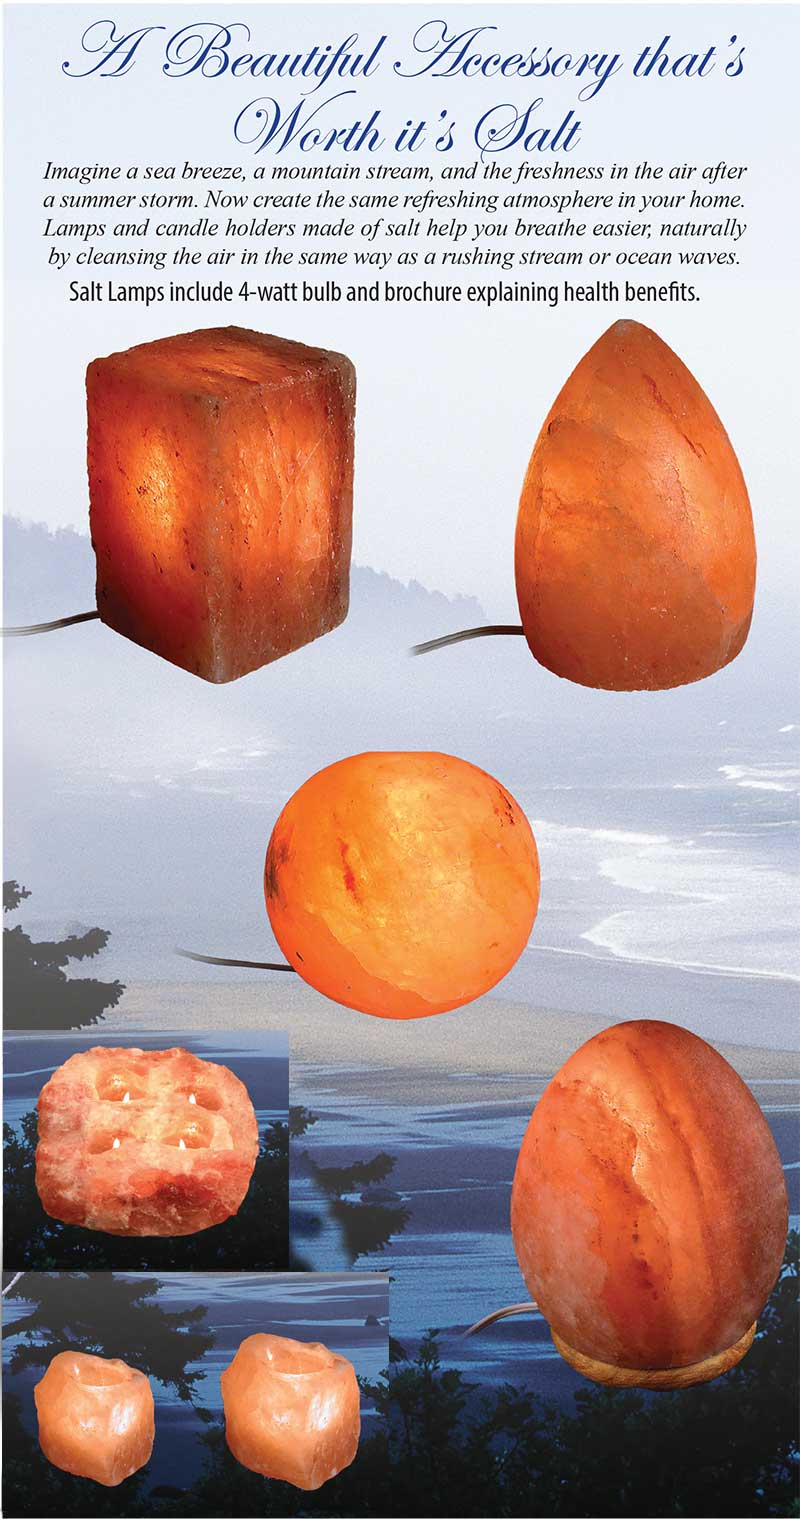 Village Originals Salt Lamps : Salt Lamps - Squire Boone Village Products - Bloom Brothers, Candy, Carved Wood, Gift, Souvenir ...